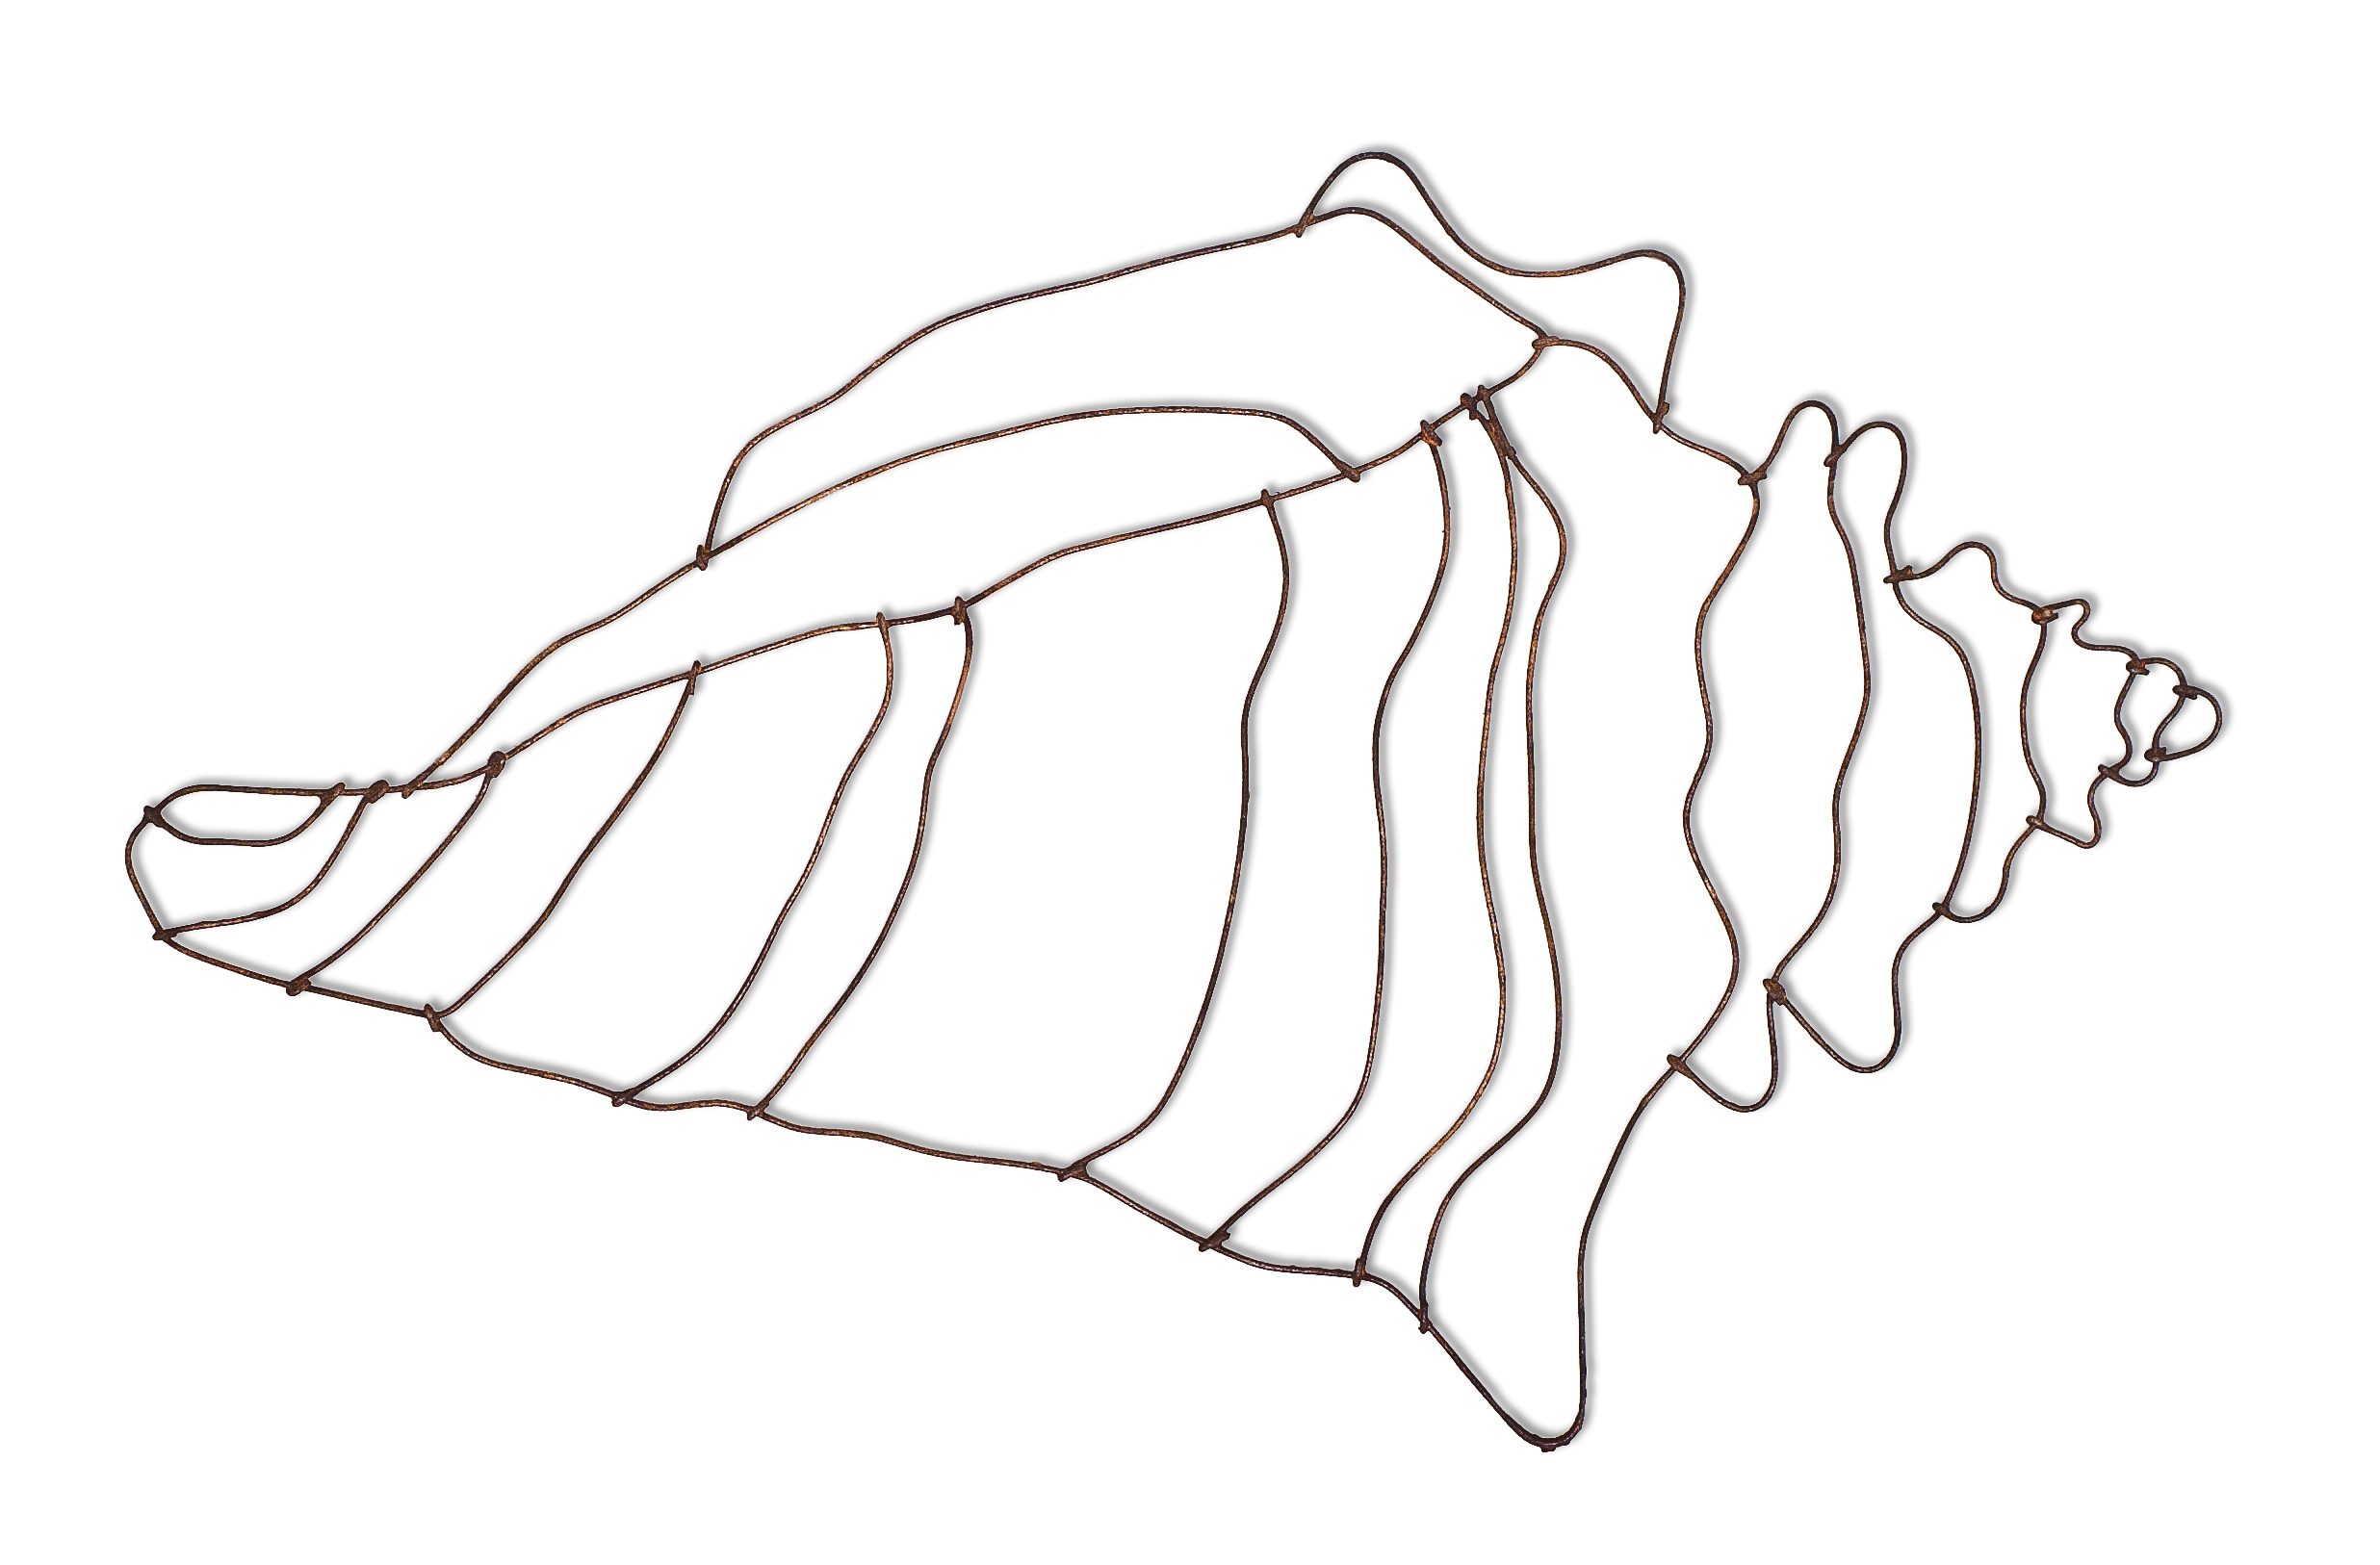 Drawn shell queen conch Free on  Art Conch